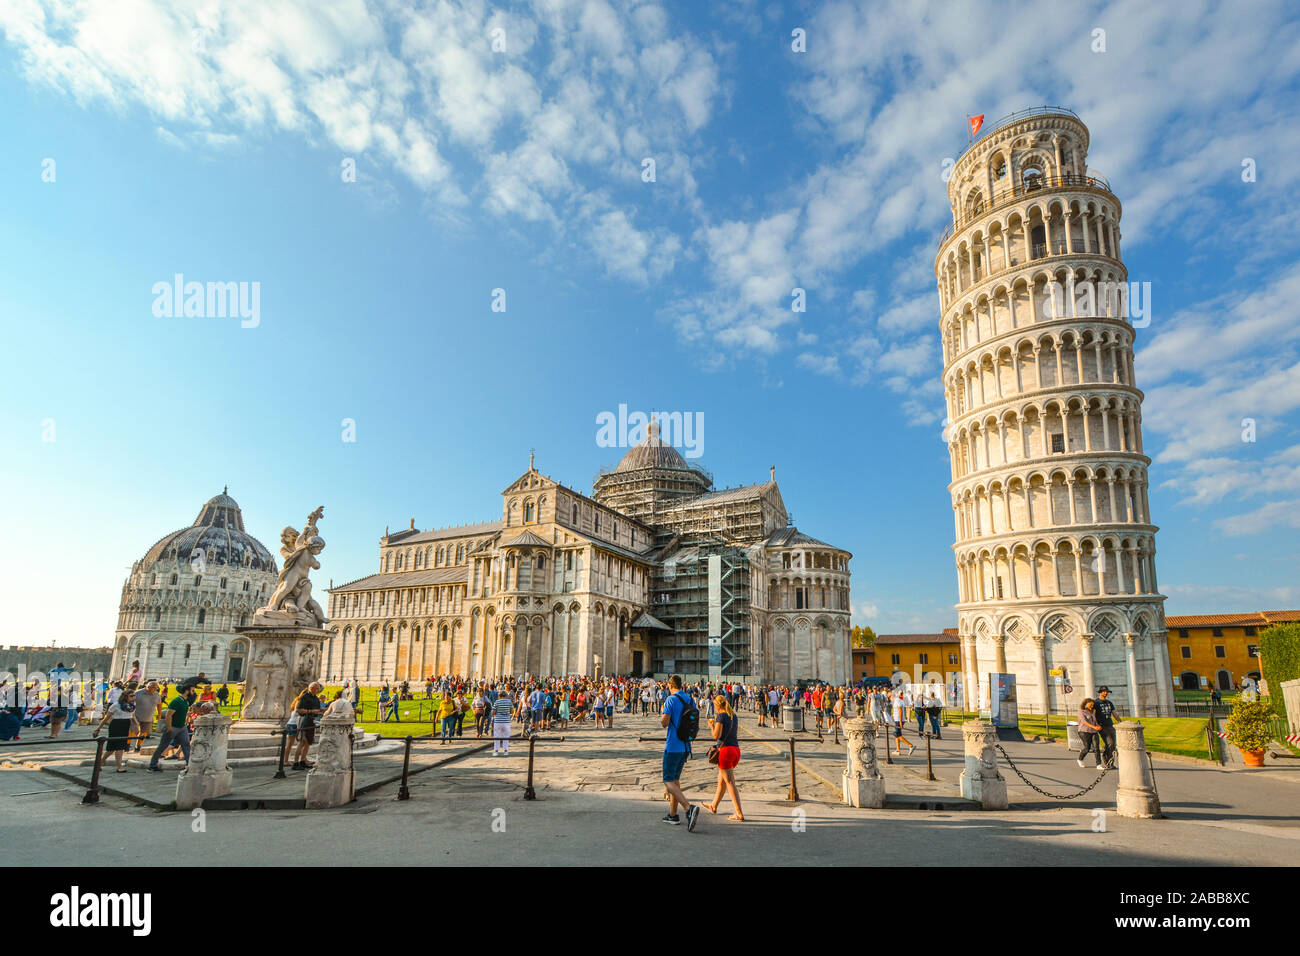 Tourists fill the Field of Miracles and Cathedral square alongside the Leaning Tower, Baptistery and Duomo in the Tuscan city of Pisa, Italy Stock Photo